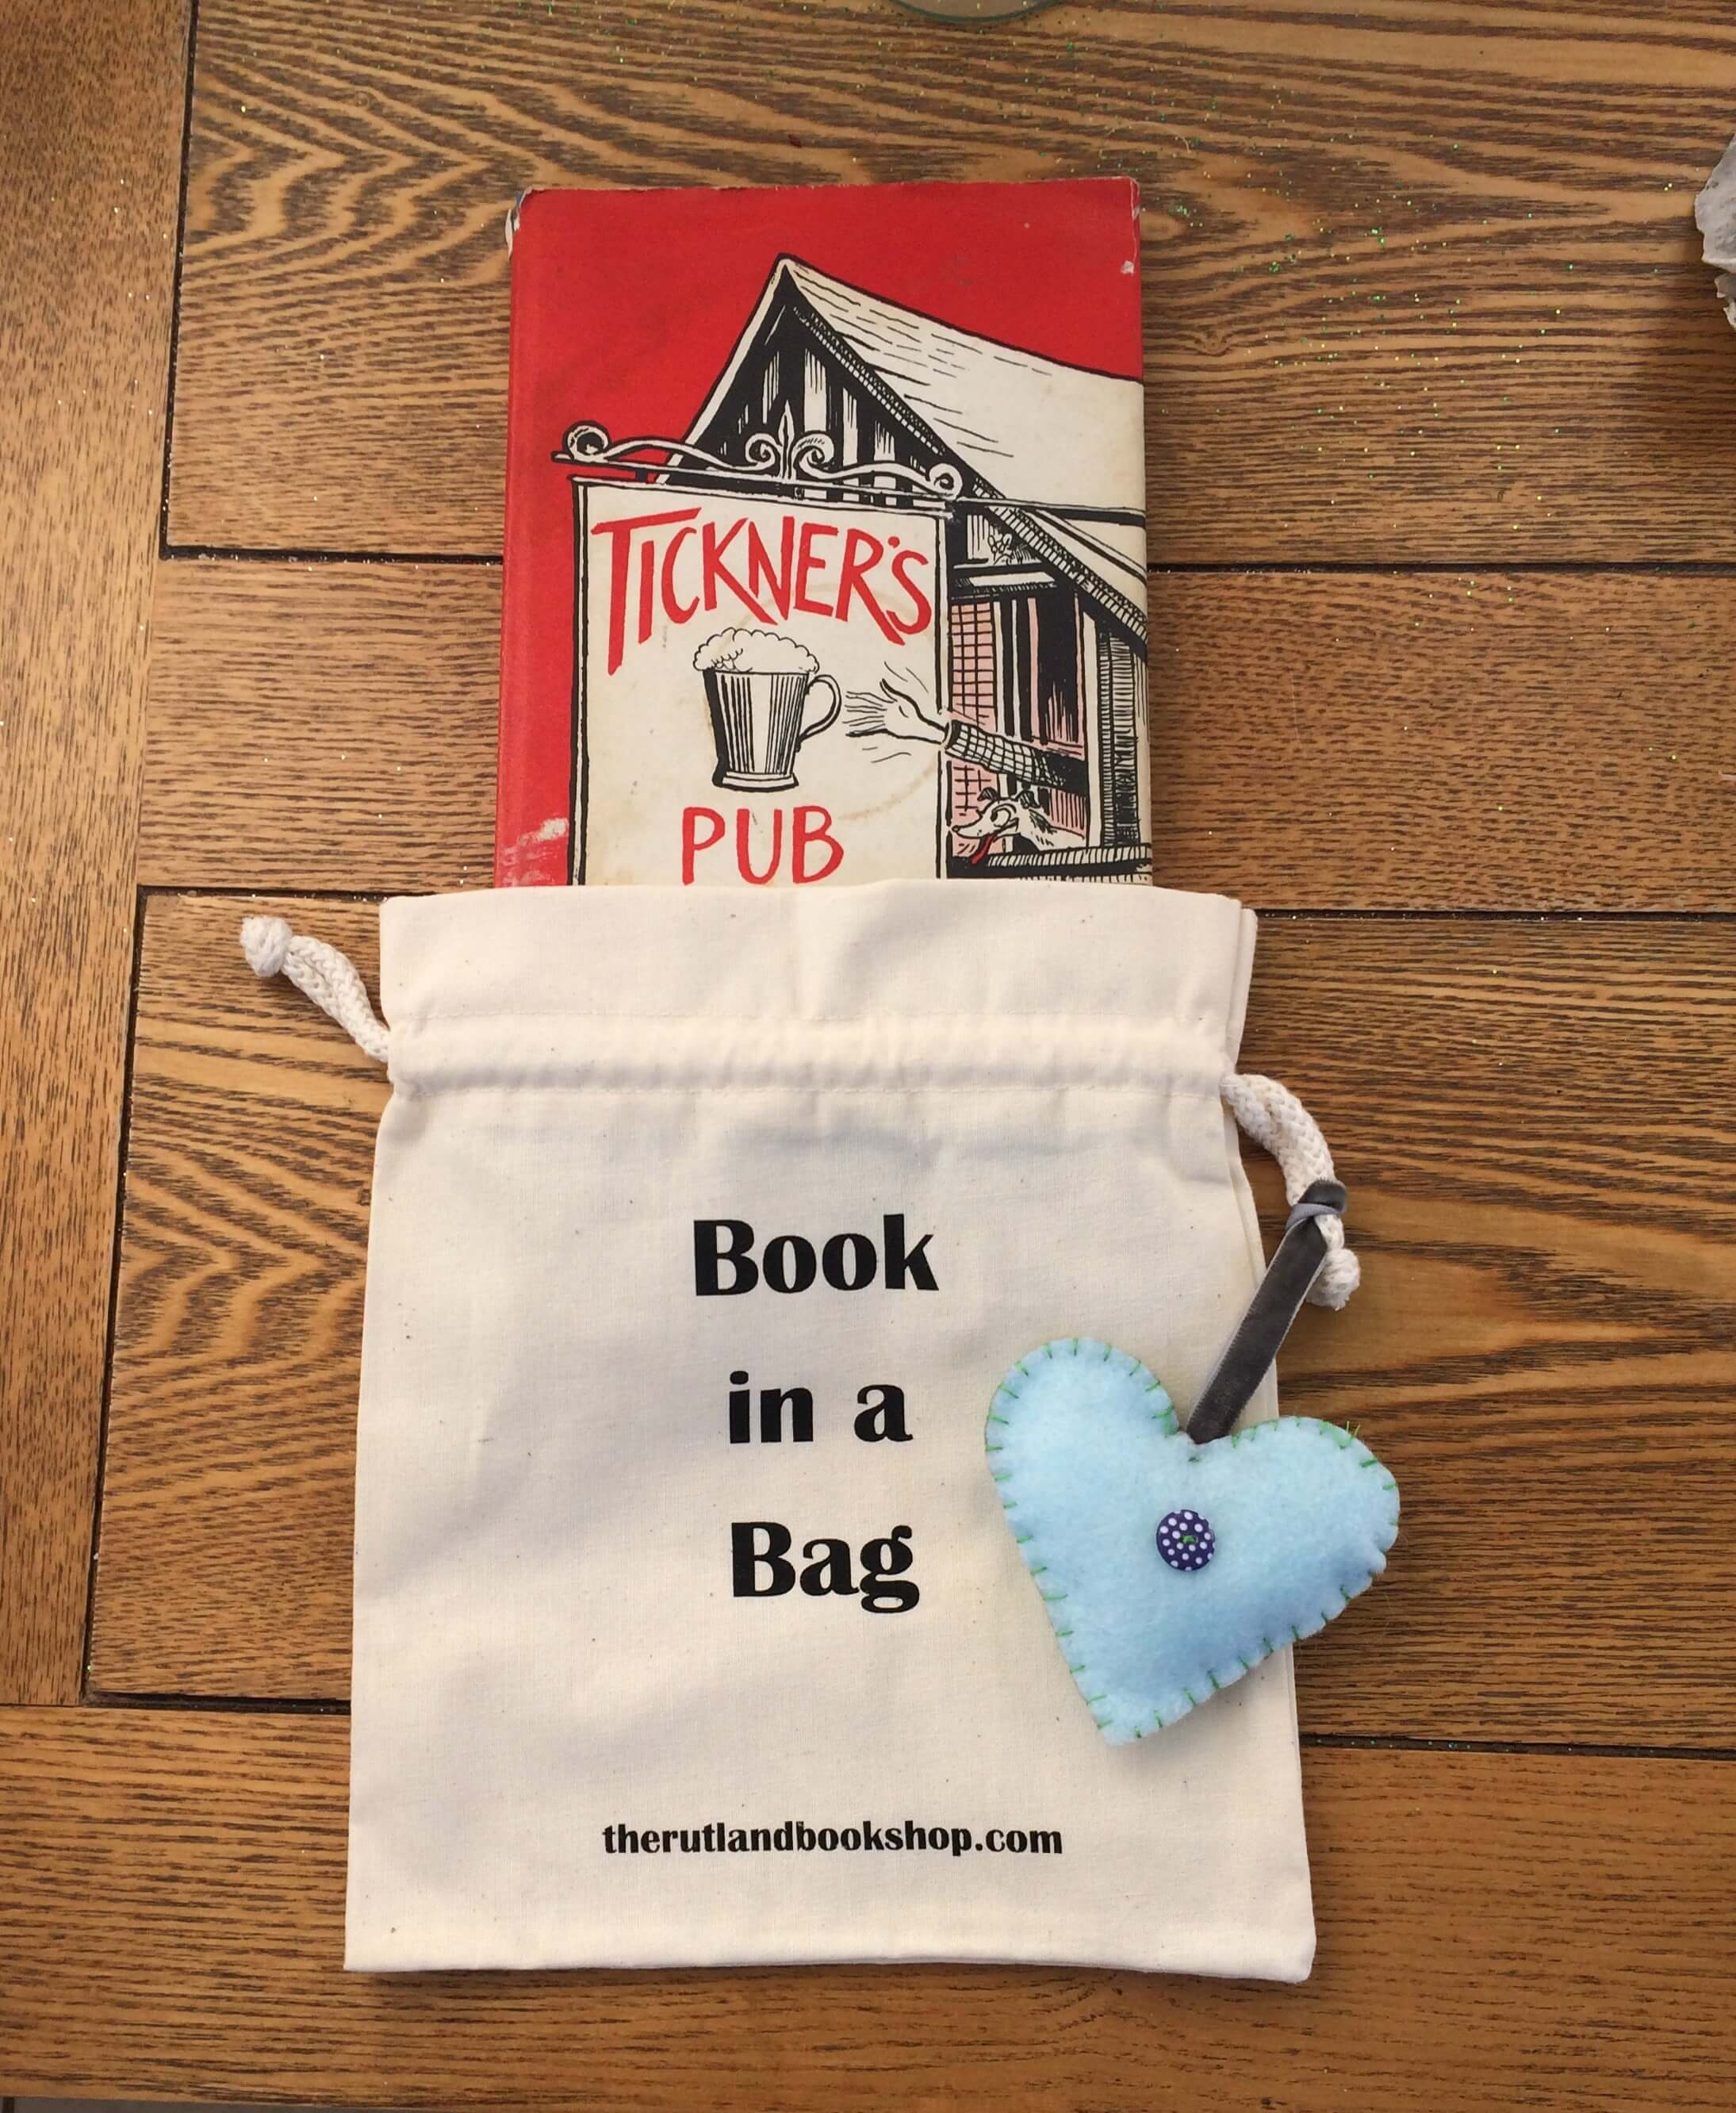 Tickner's Pub (Book In A Bag)